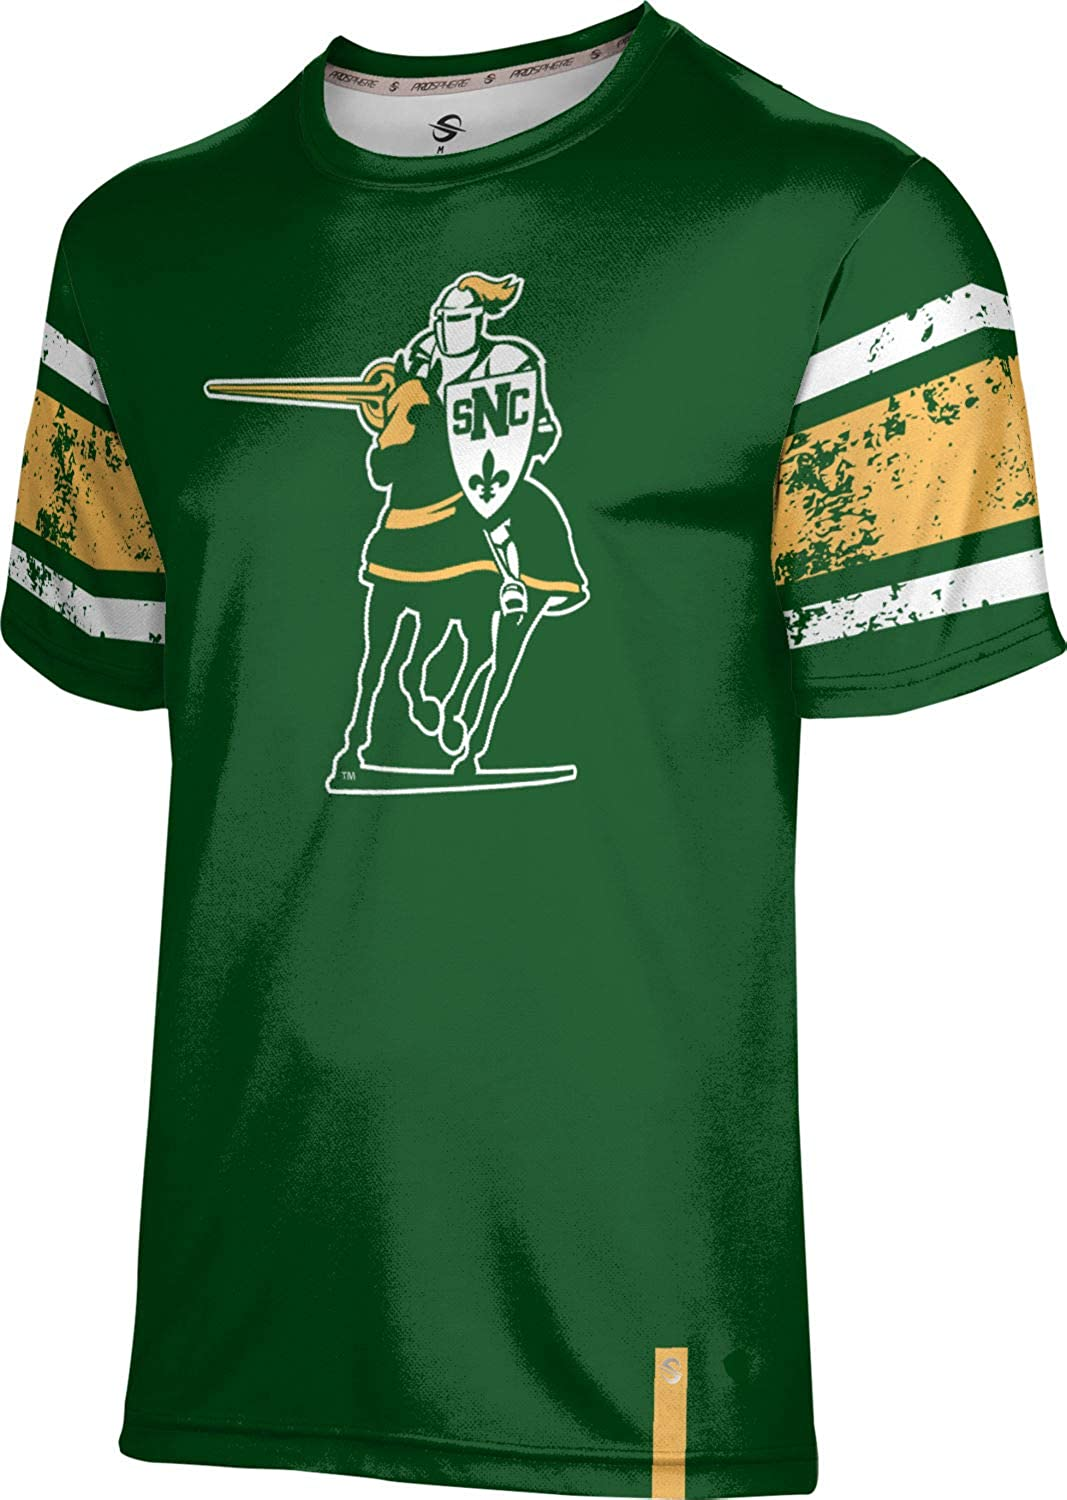 ProSphere Financial free shipping sales sale St. Norbert College Boys' Performance T-Shirt End Zon